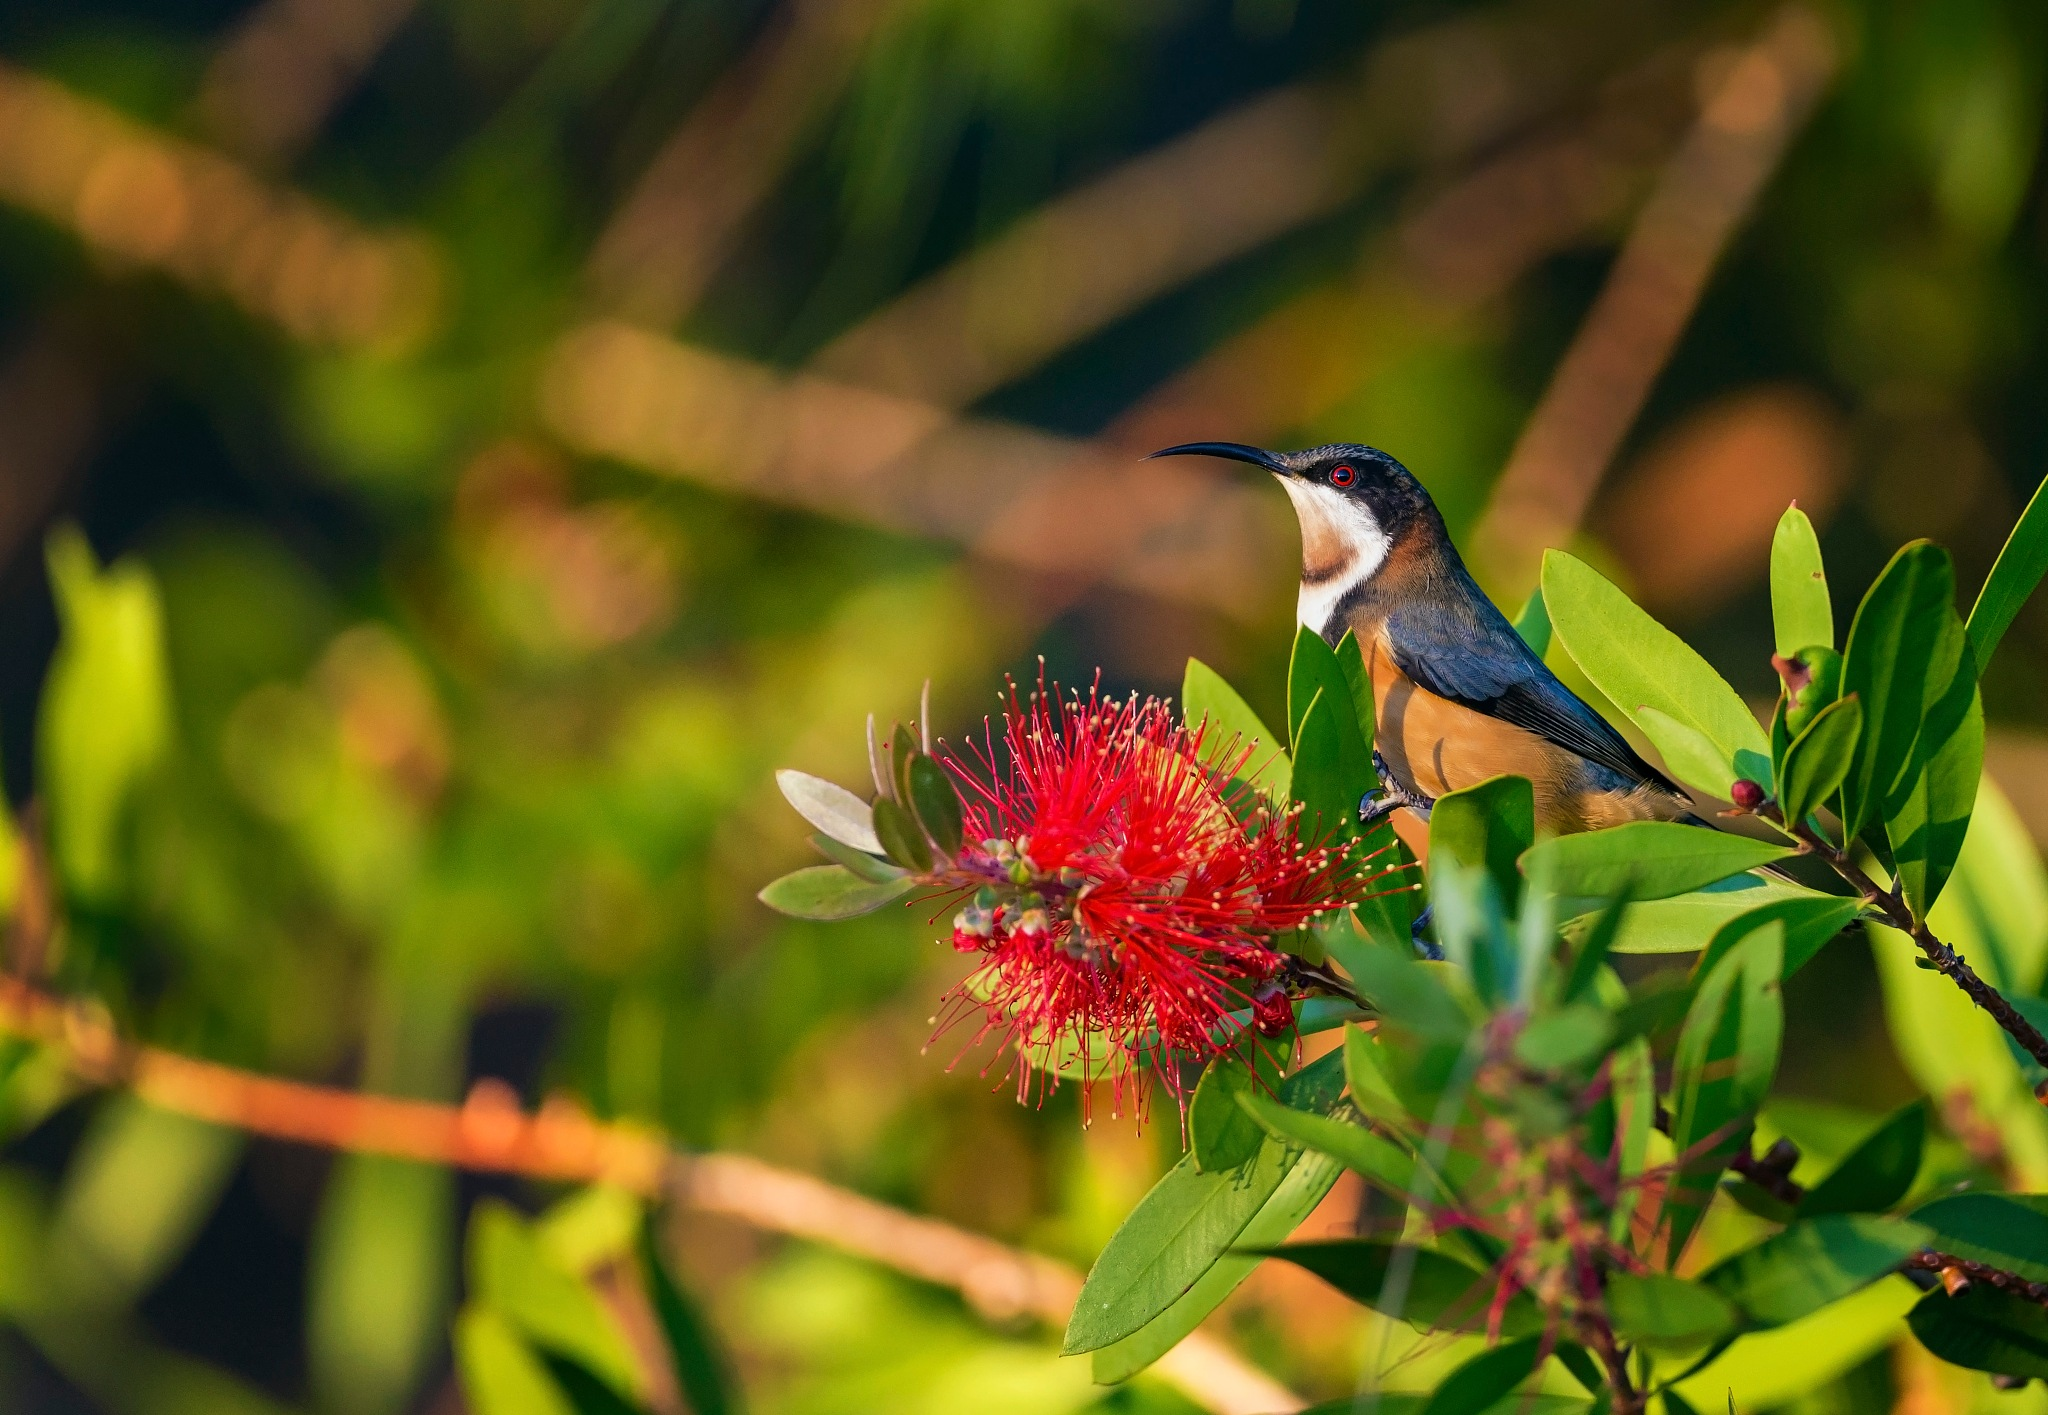 The eastern spinebill by Graeme Cox